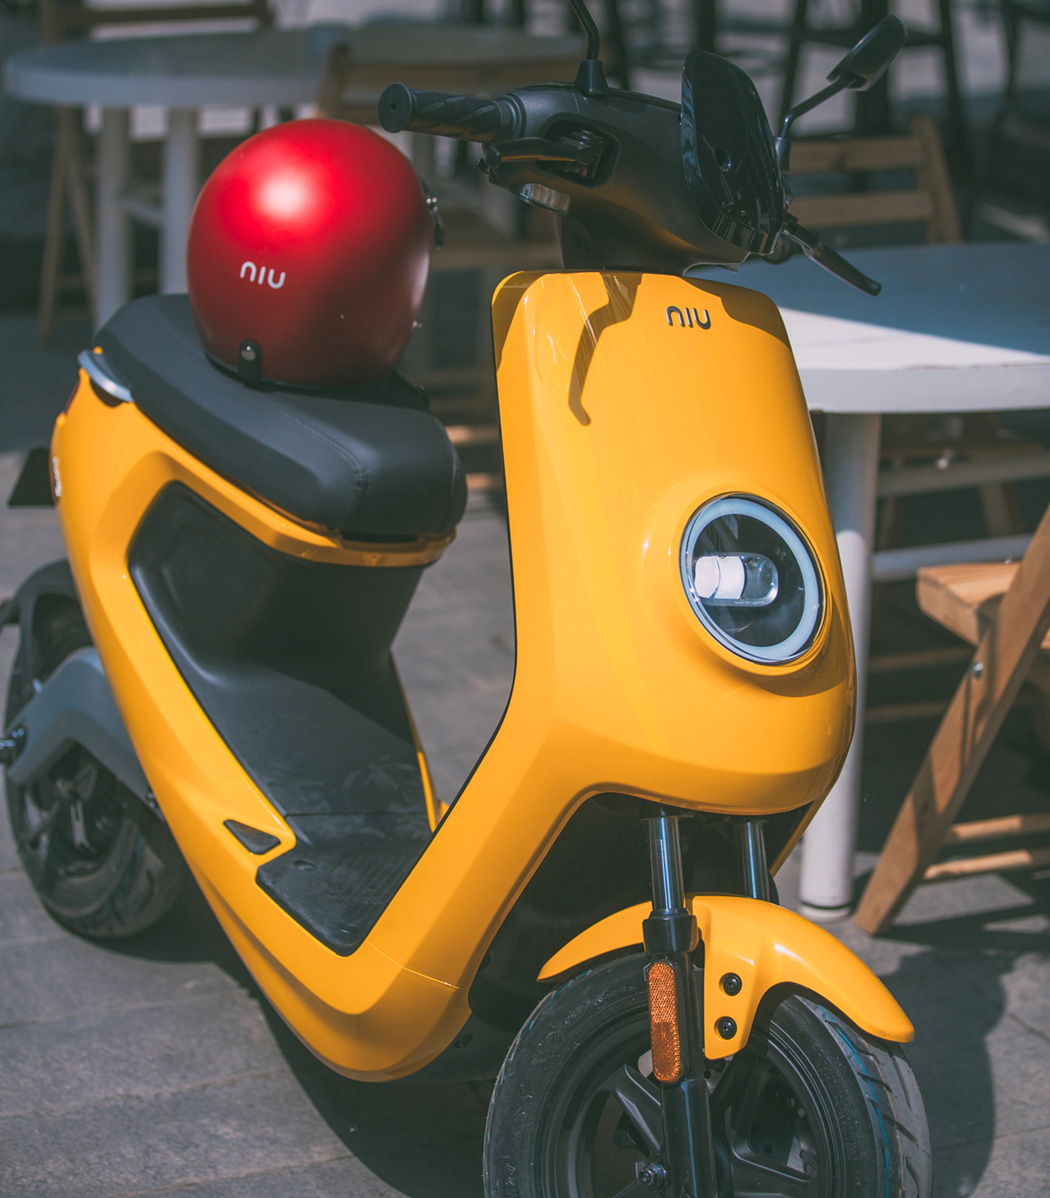 Teofilo Net The Niu Face Of Scooters  # Muebles Pagolin